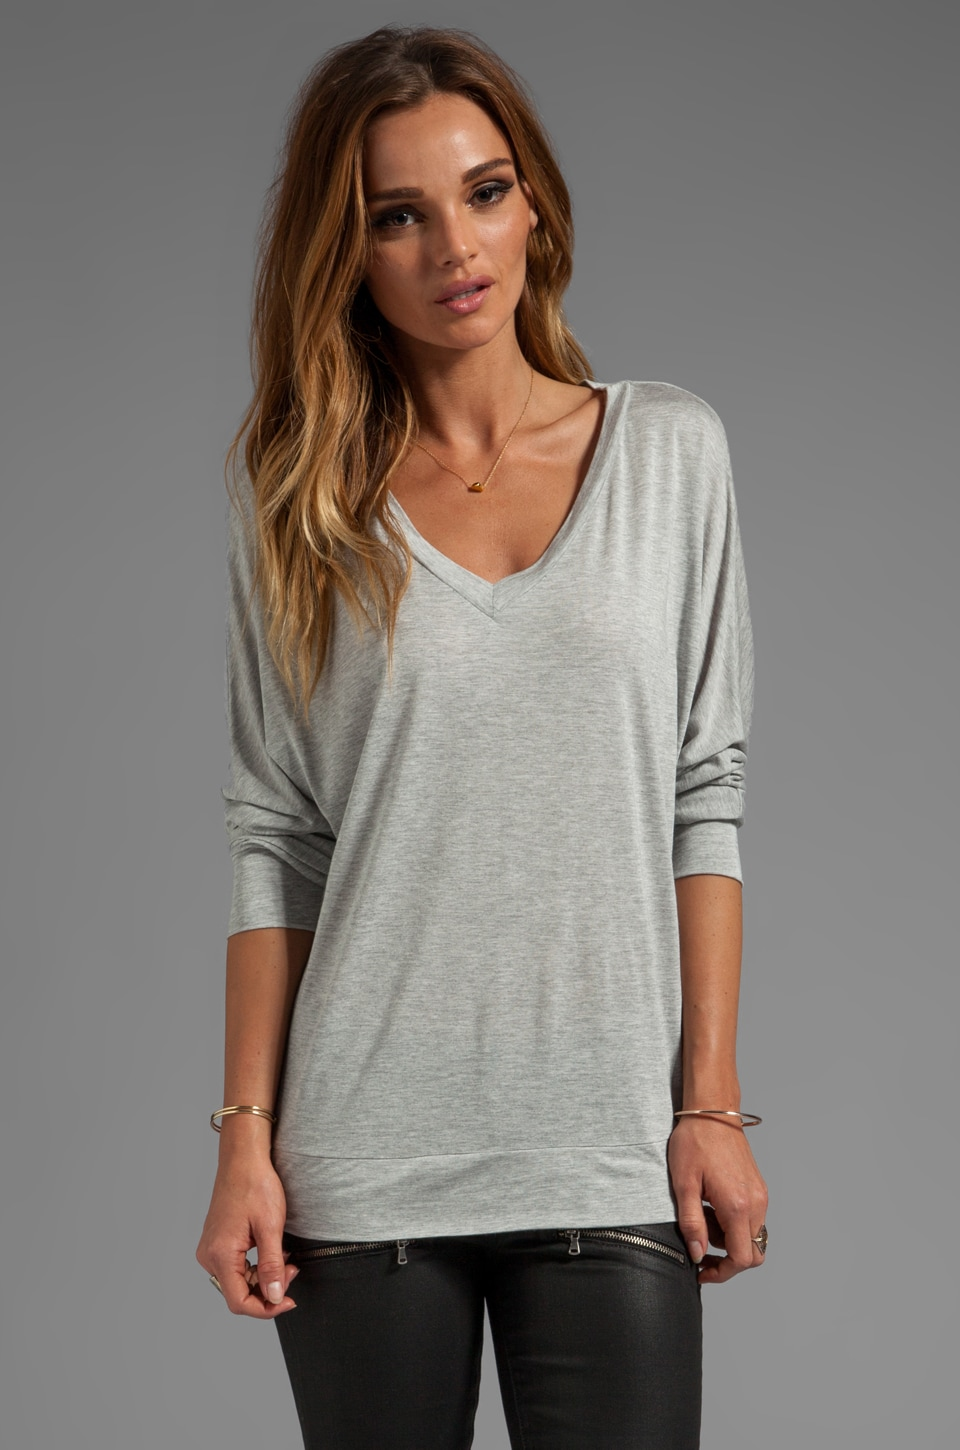 Lanston Long Sleeve V Neck Top in Heather